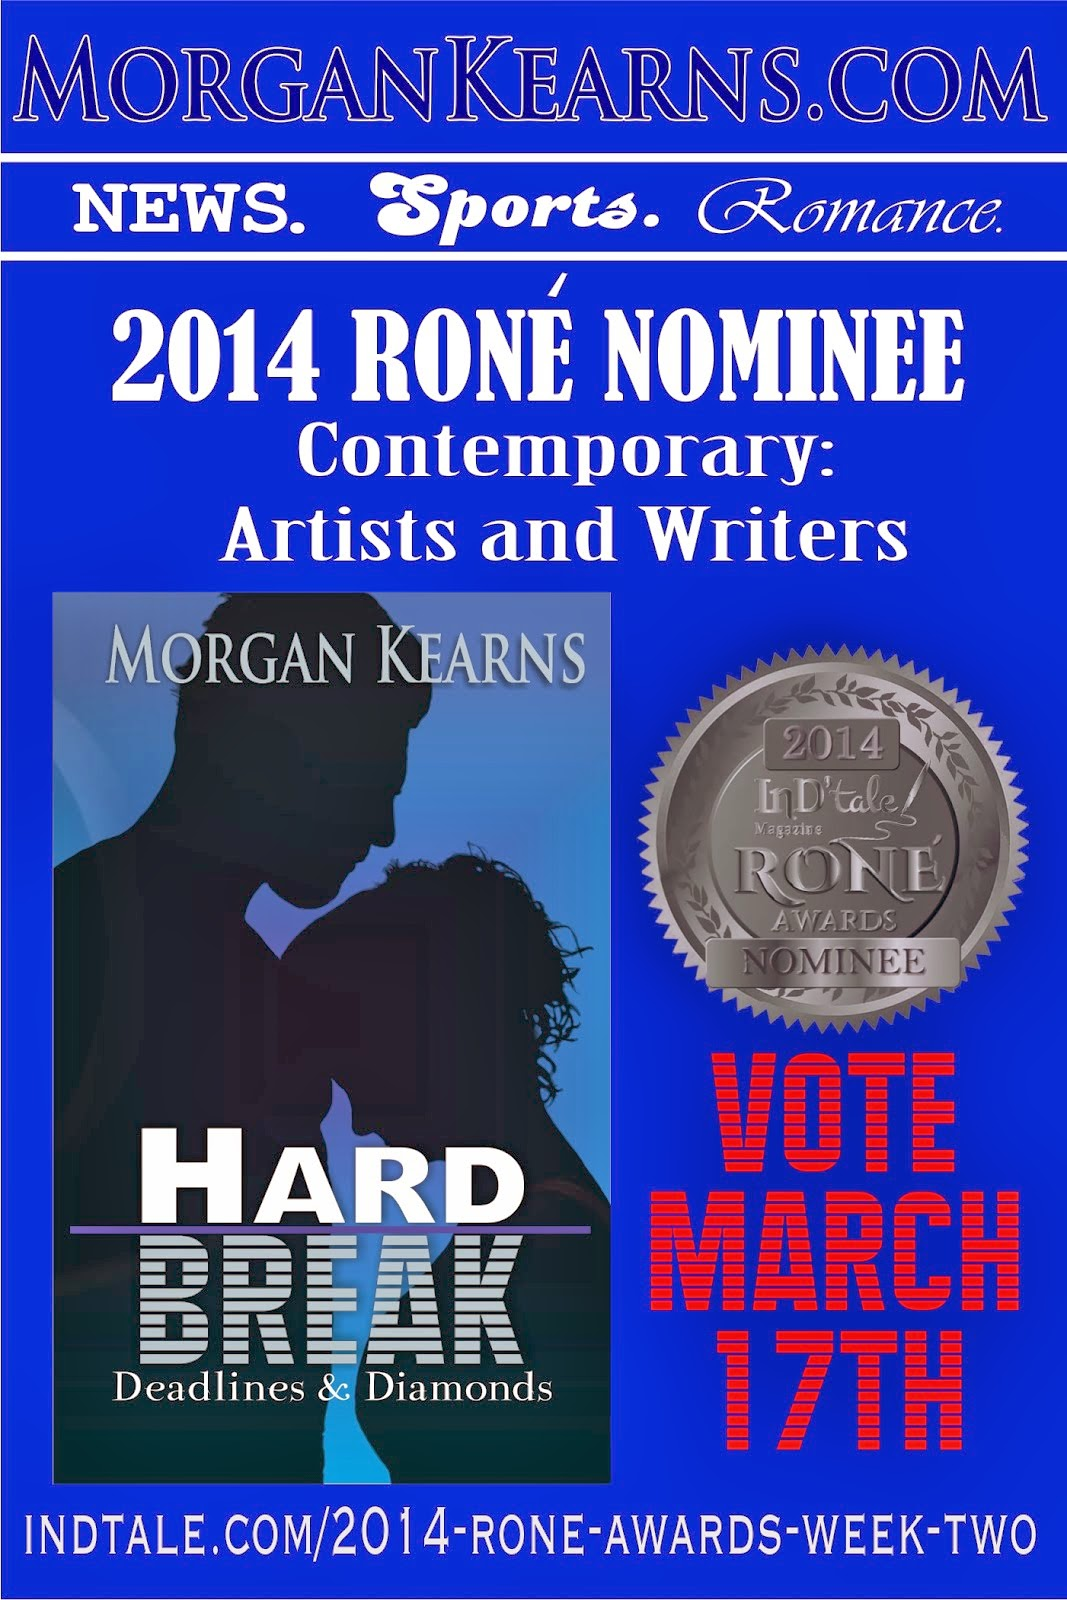 Hard Break ~ 2013 RONE Nominee